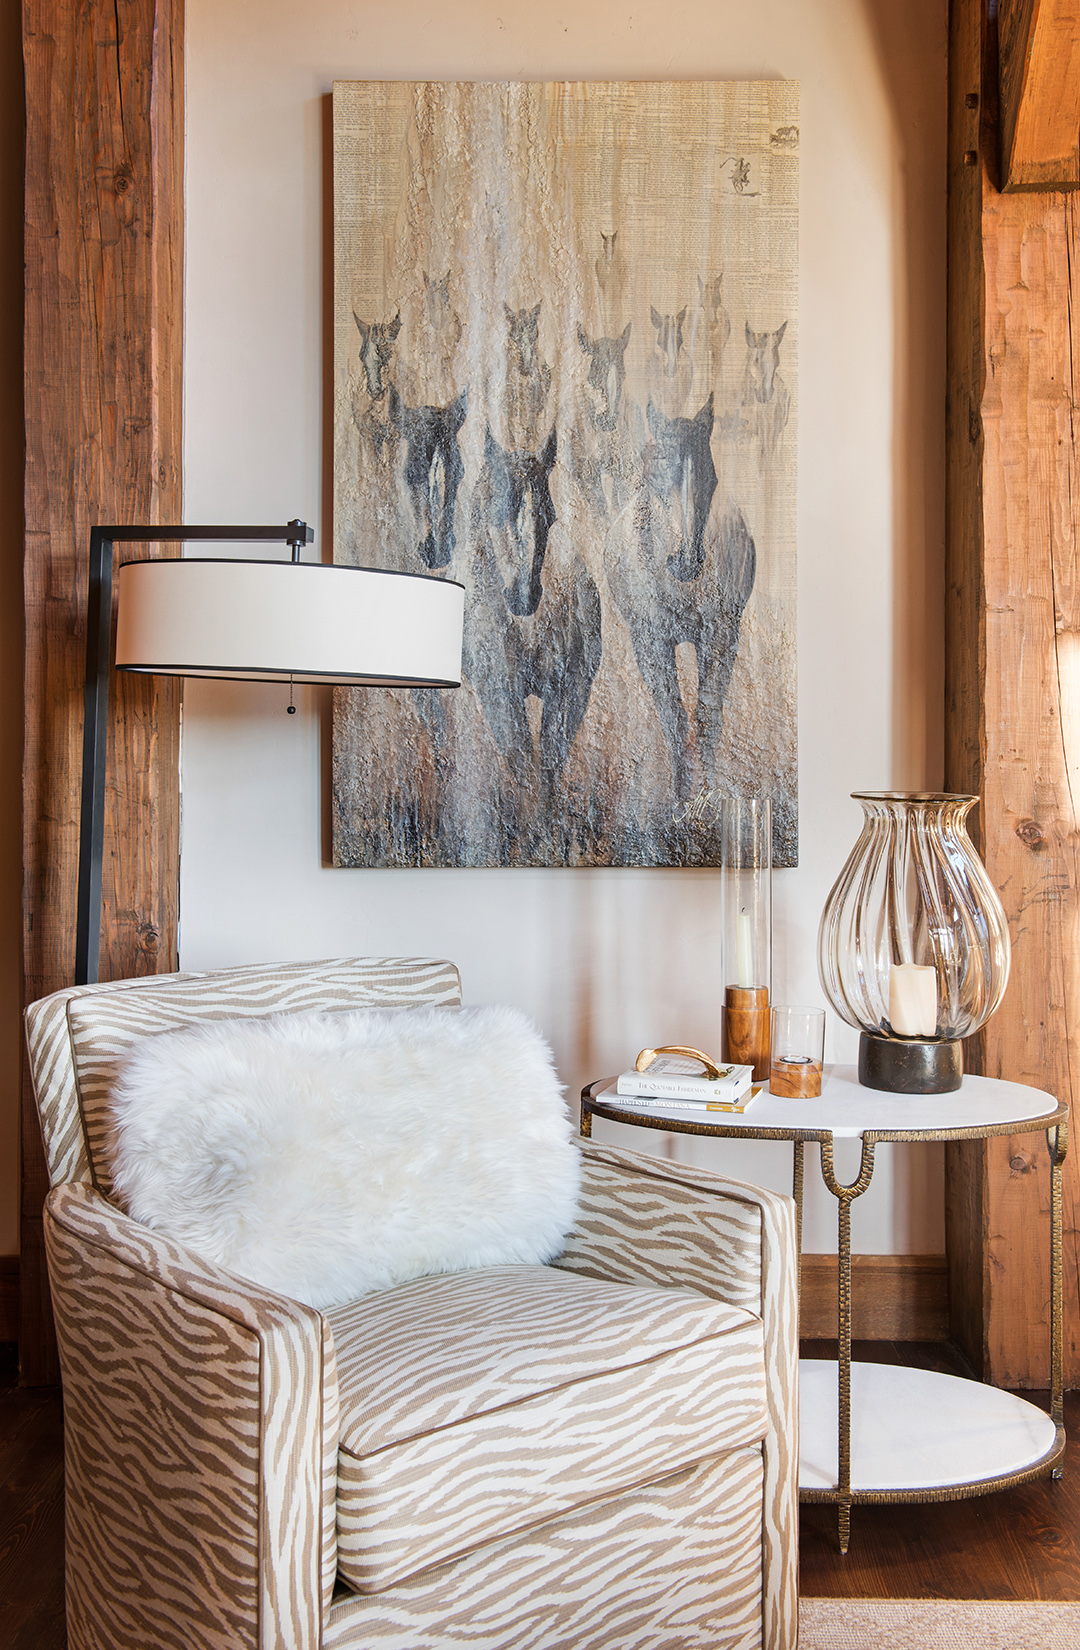 I love every bit of this corner, the art, the furnishings, even the candles! Interior Design -  Varda Interiors